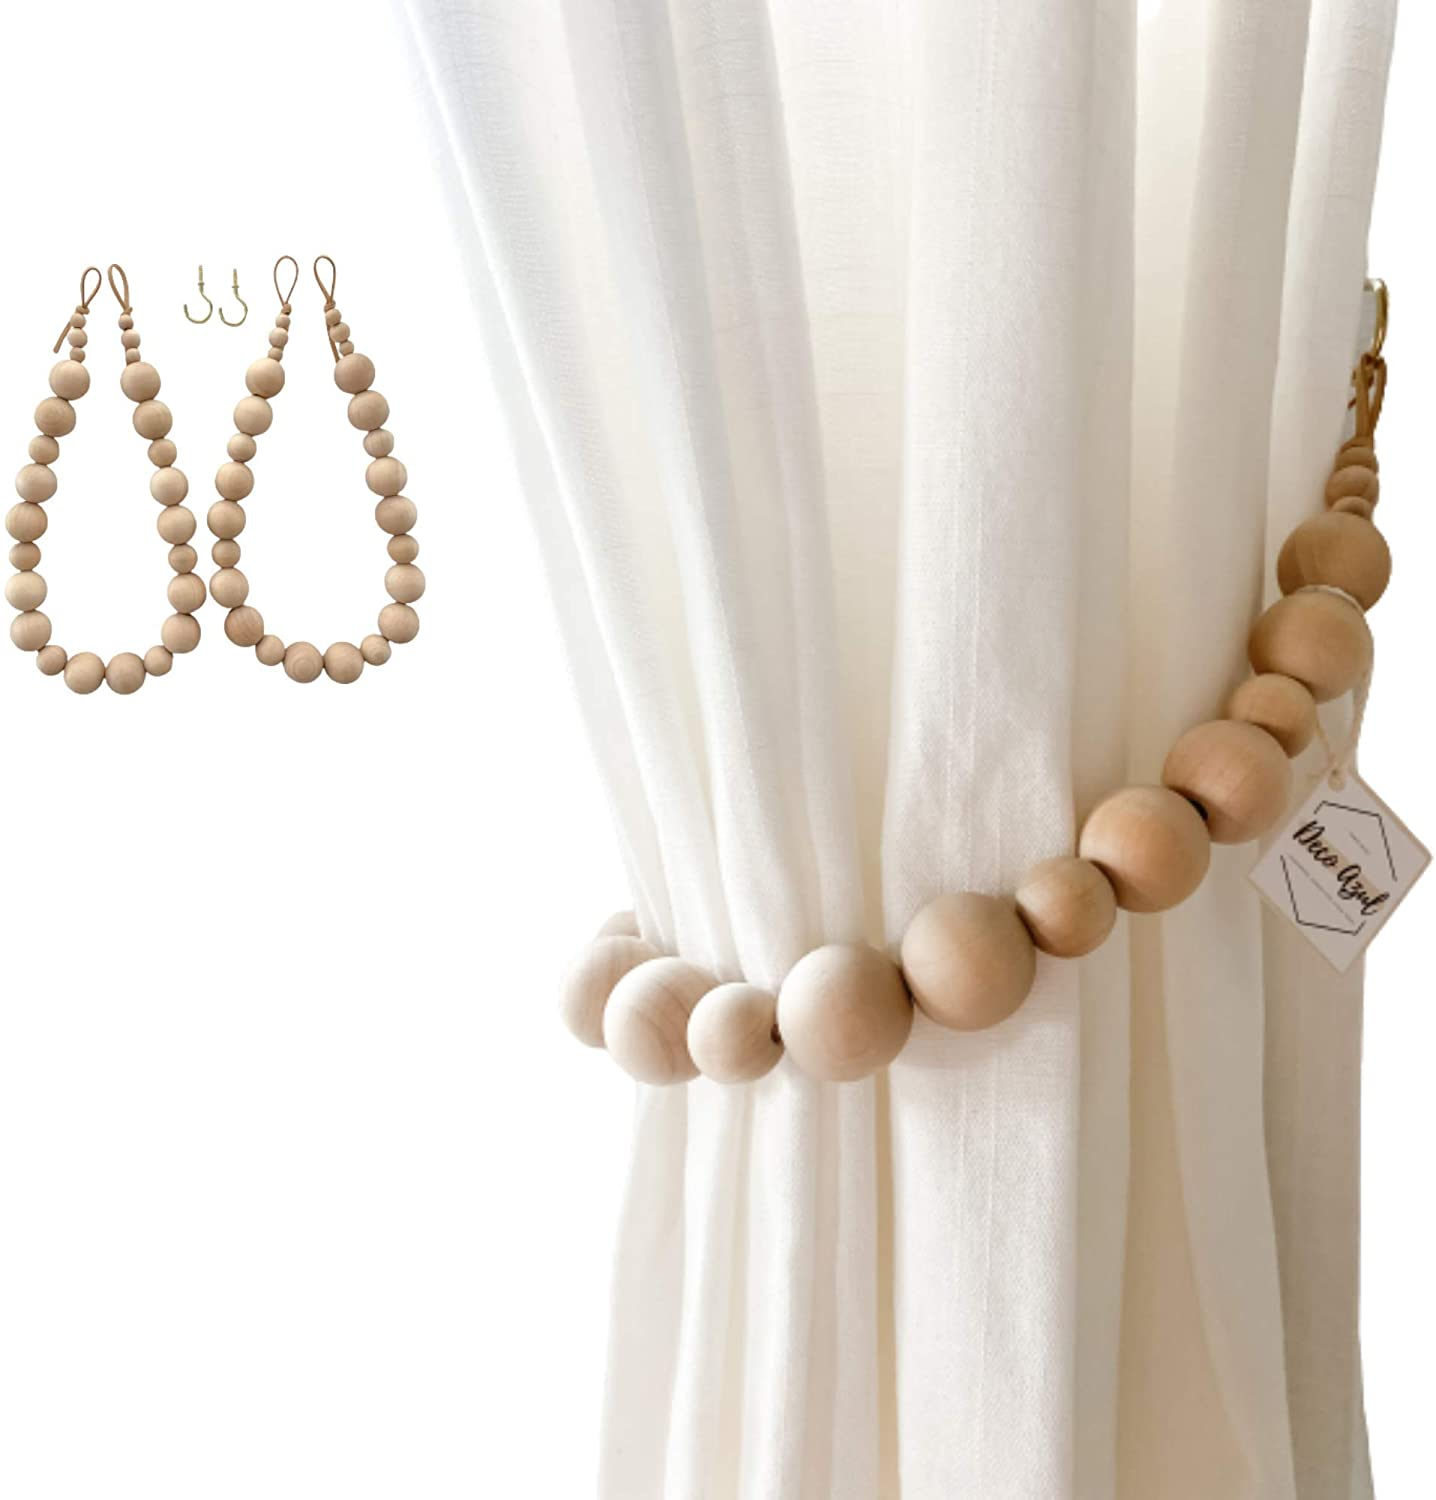 Deco Azul Curtain tiebacks│ Set of 2 Curtain holdbacks │Boho Curtain tie Backs, Farmhouse Curtain Holders for Drapes, Natural Wood Bead Curtain Ties │Brass Hooks Included: Home & Kitchen